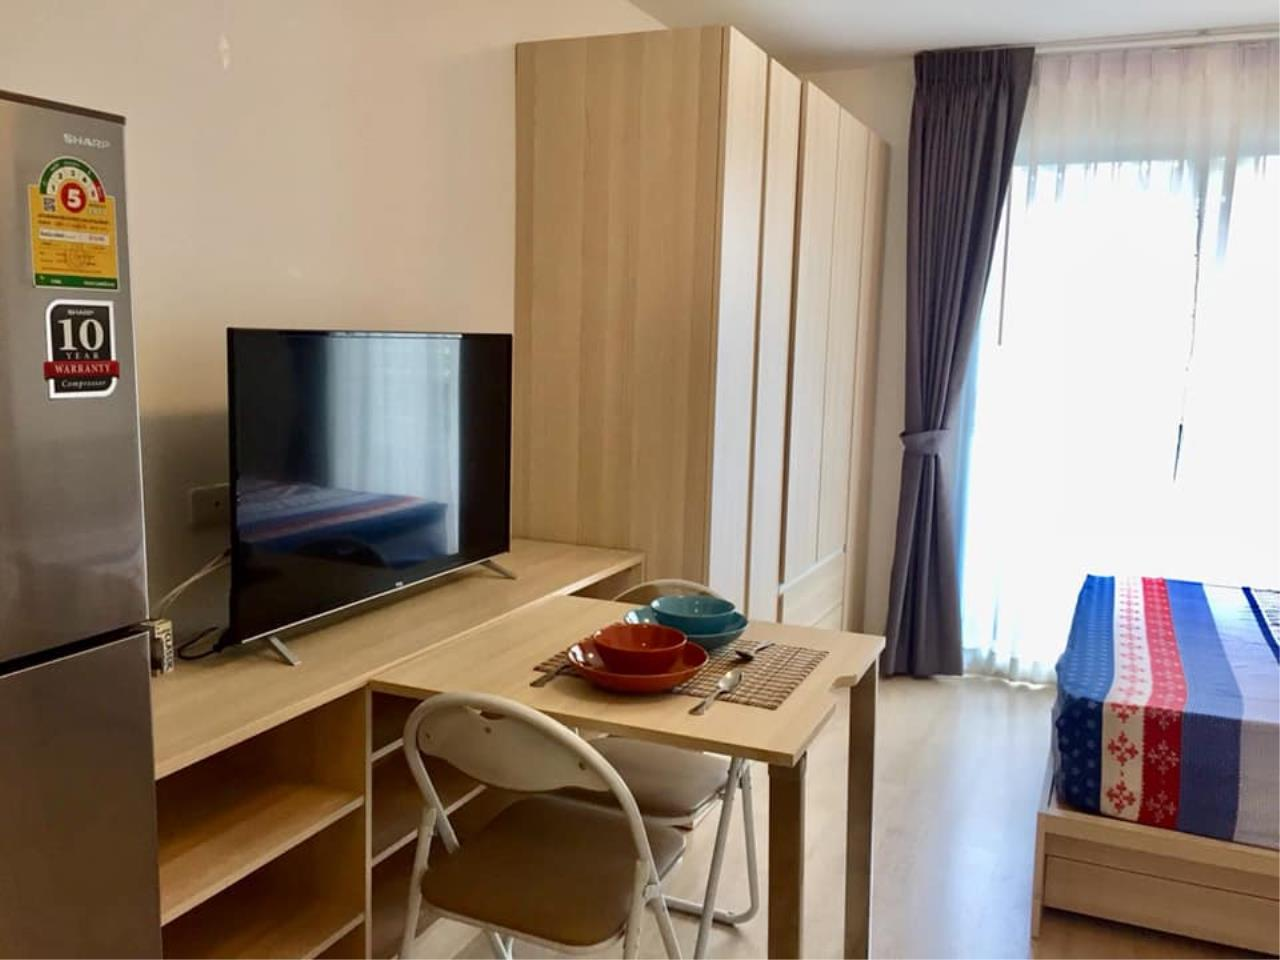 Agent Thawanrat Agency's Condo for rental ELIO DEL RAY Near BTS.Udom Suk 1 bedroom,1 bathroom. size 24 sqm.Floor 3 rd. fully furnished Ready to move in 6